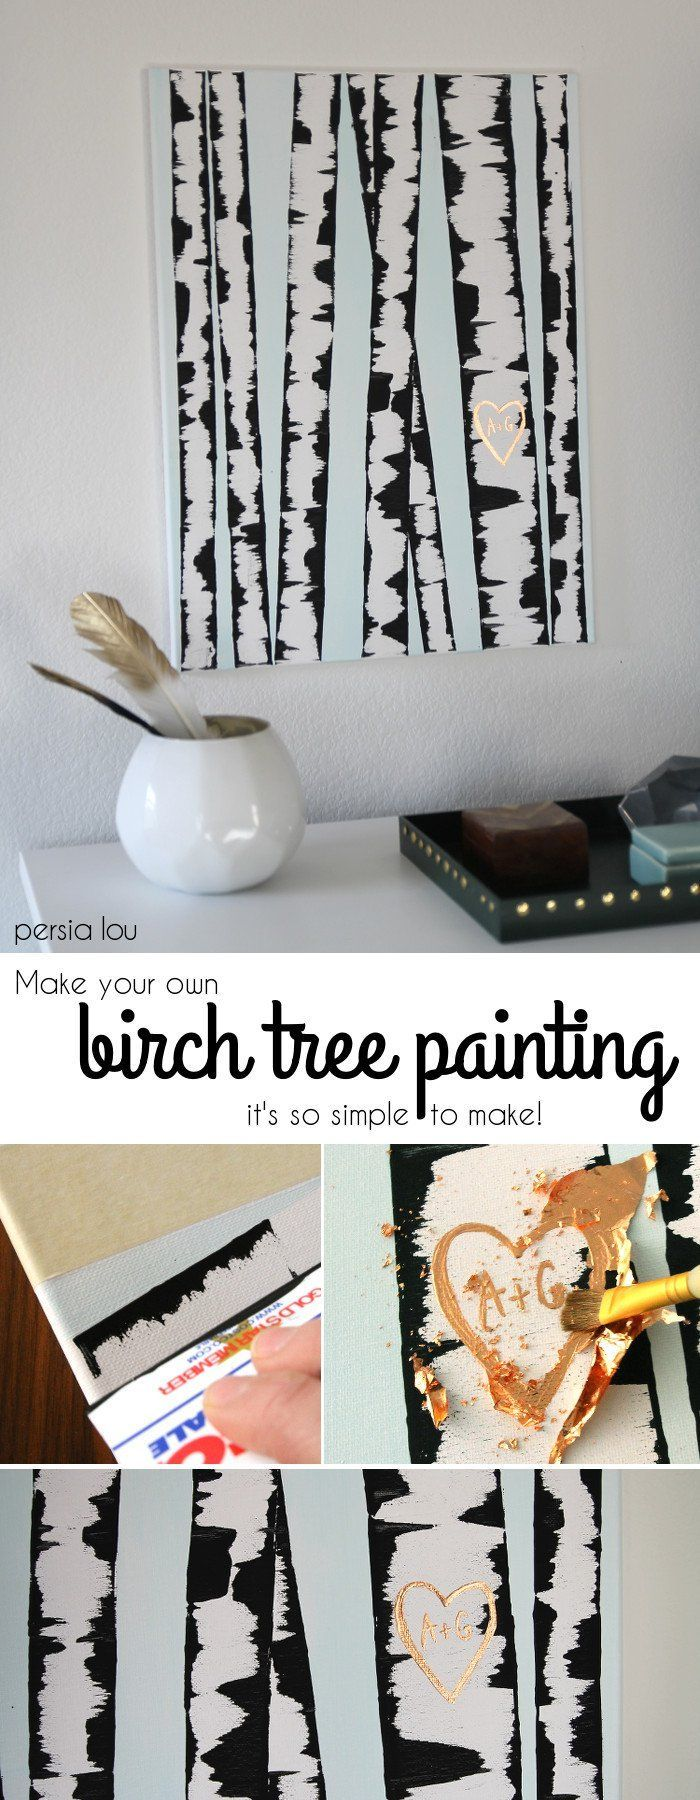 best wall art images on Pinterest Good ideas Cool ideas and